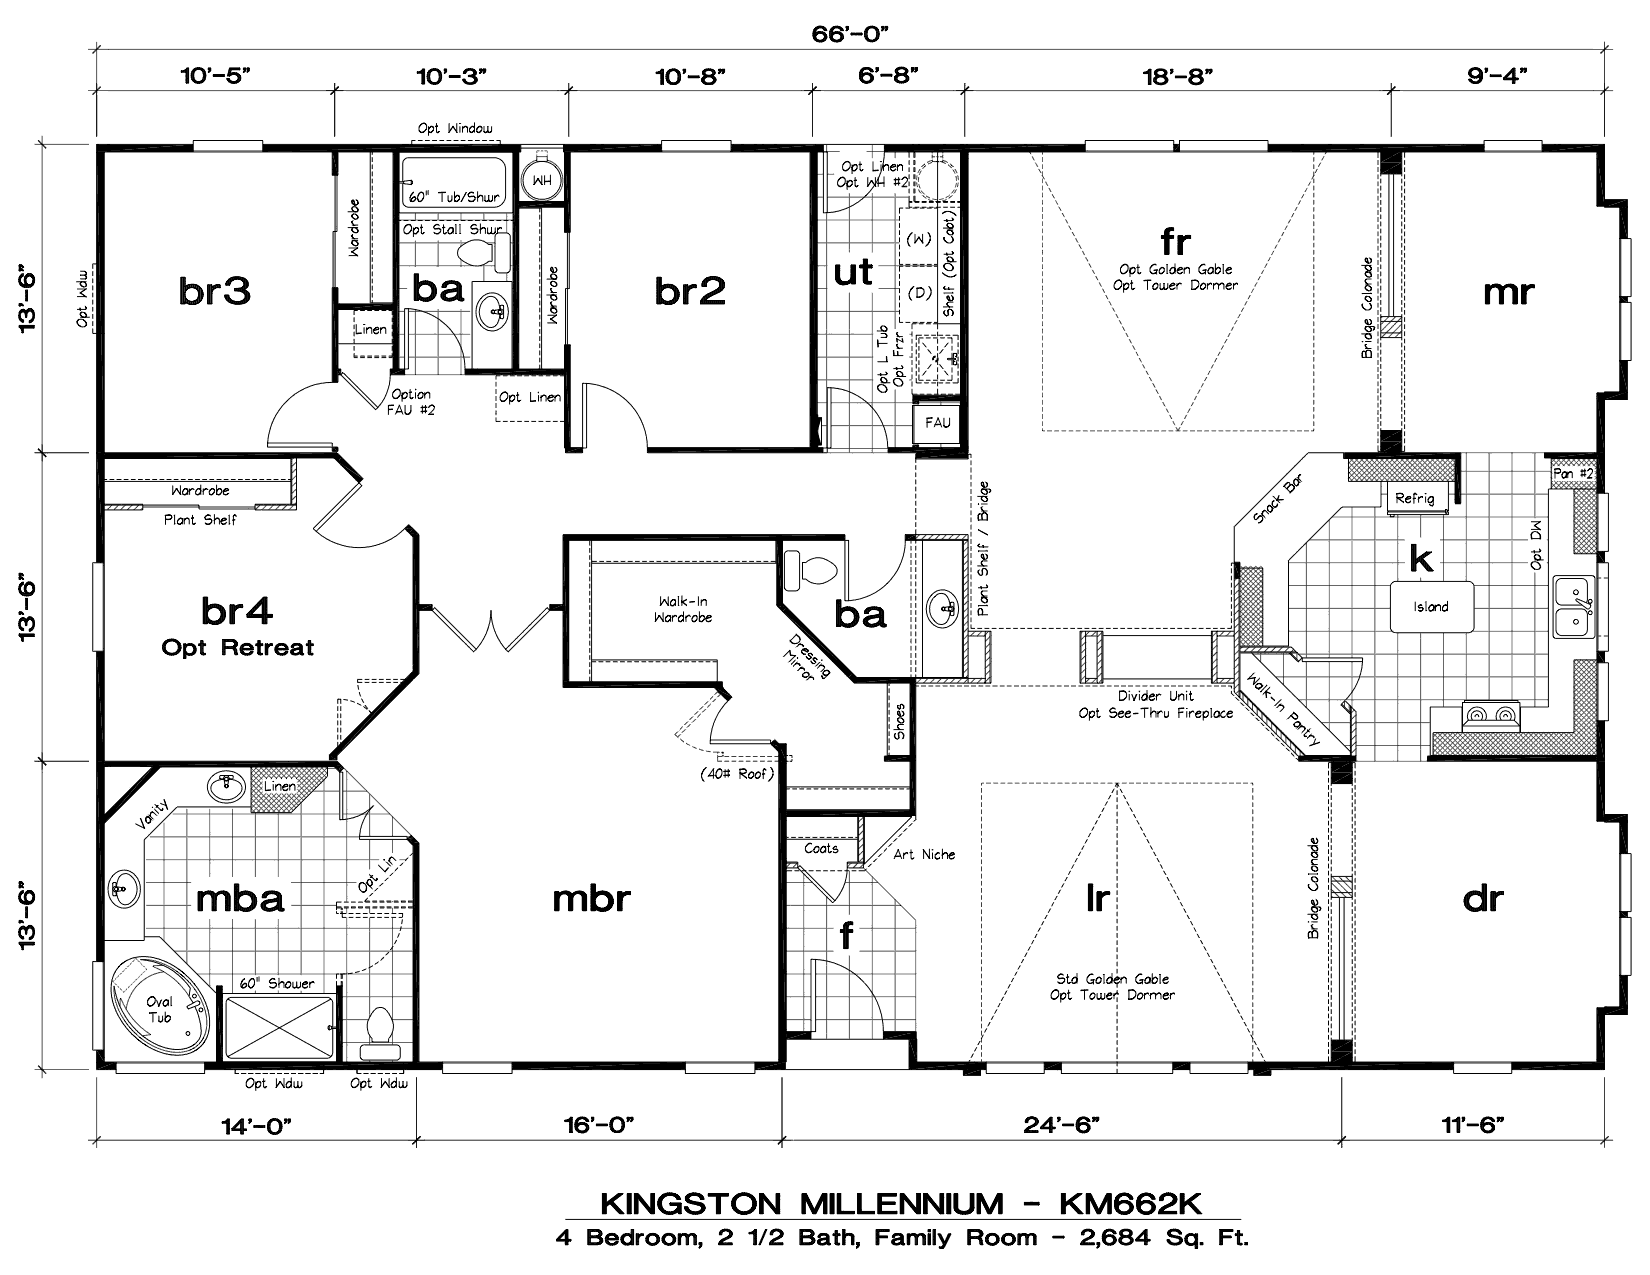 Tlc Manufactured Homes Kingston Millennium Floor Plans